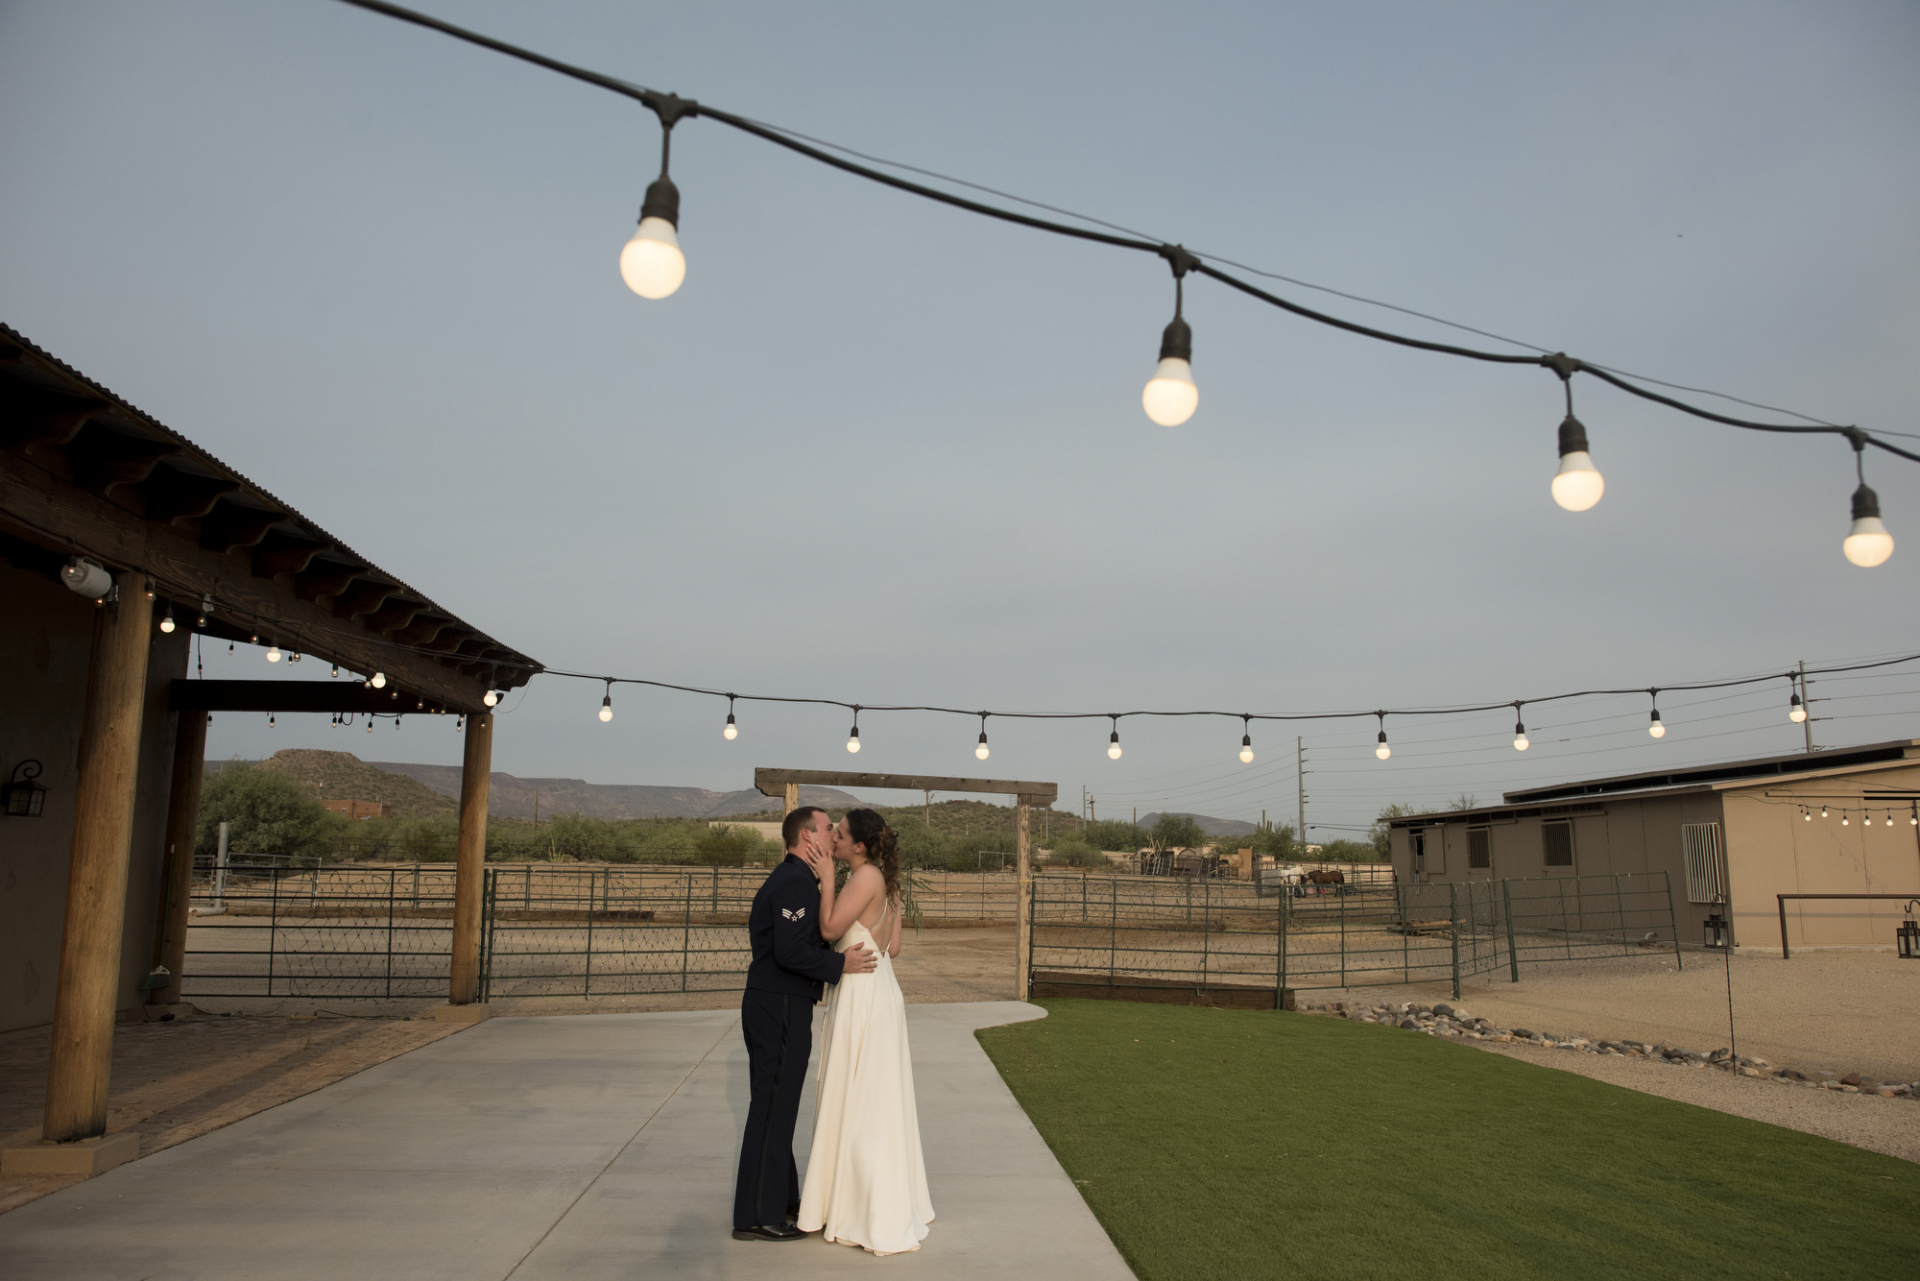 Wedding & Elopement Photographer for New River, AZ | The couple is Framed by the strings of lights that were set up for the wedding